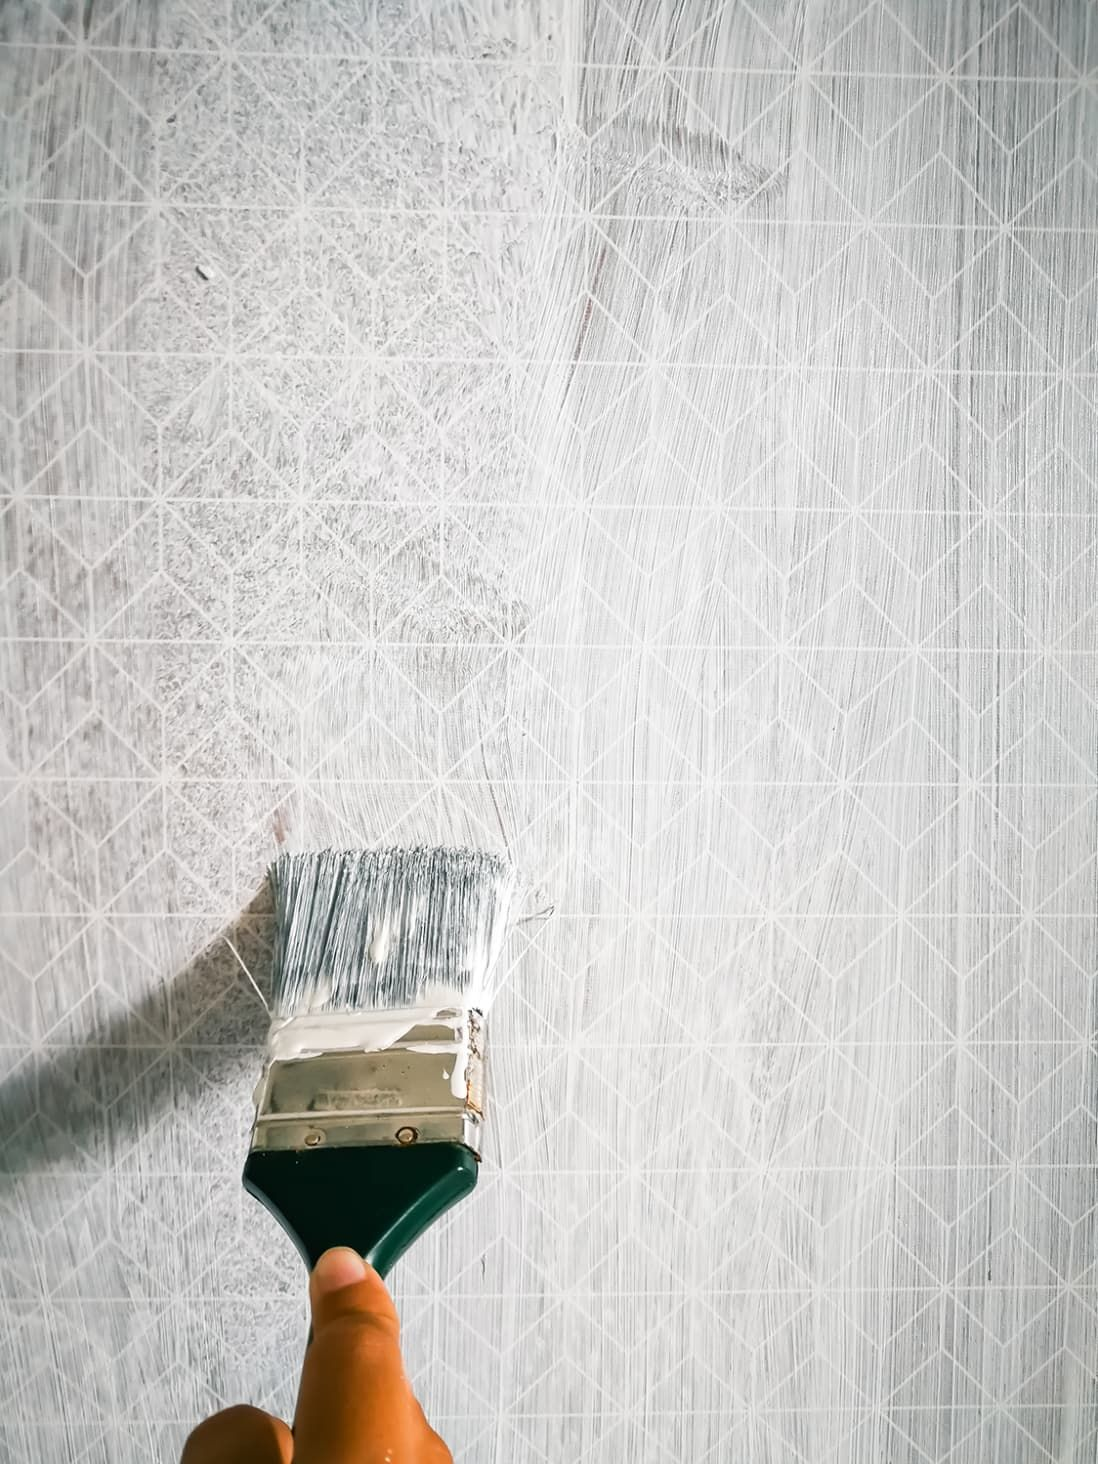 When It S Ok To Paint Over Wallpaper And How To Do It Right Painting Over Wallpaper Painting Textured Walls Painting Wallpaper